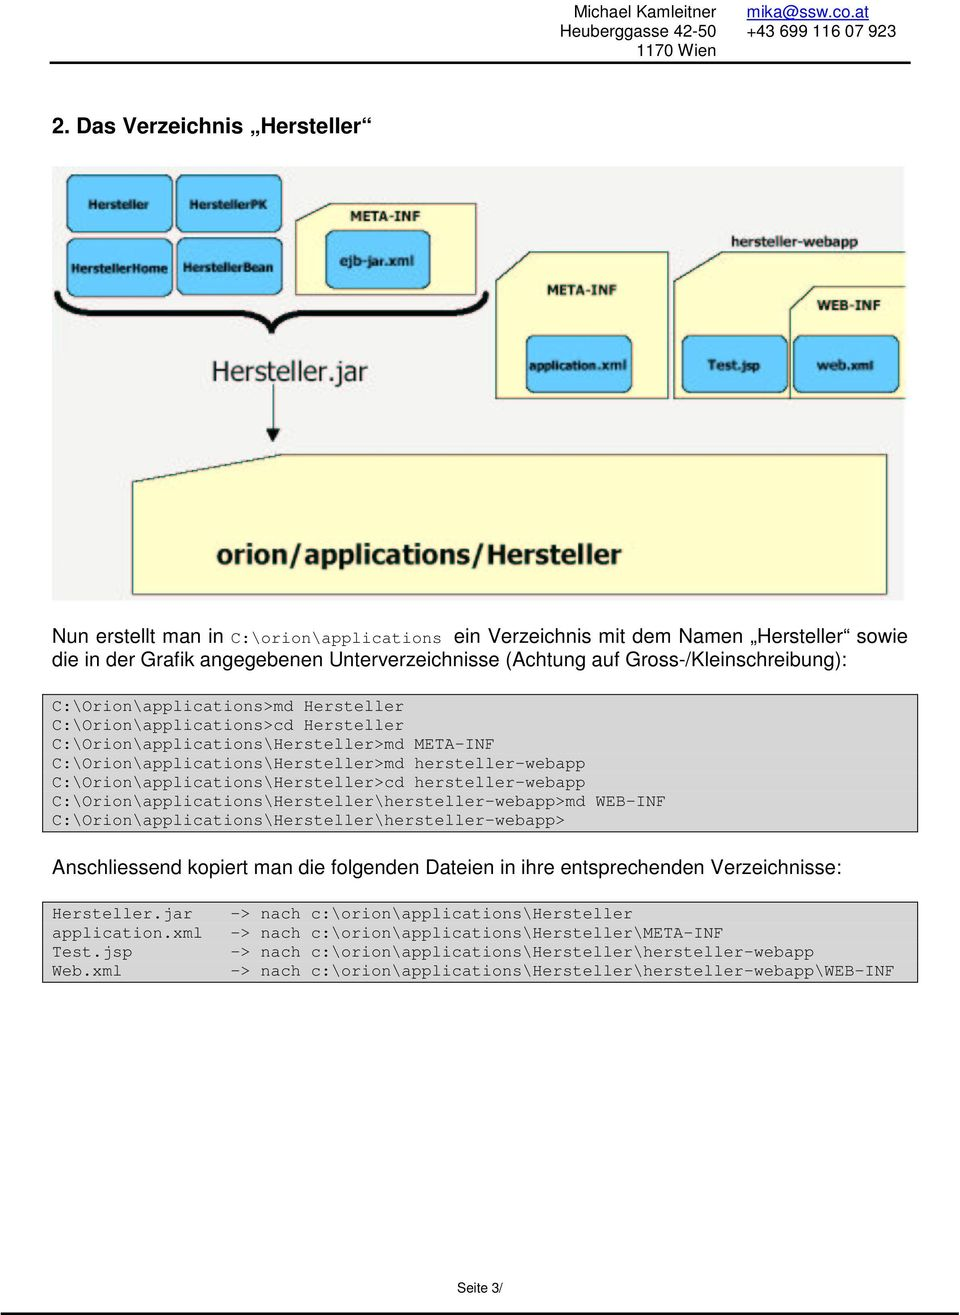 C:\Orion\applications\Hersteller>cd hersteller-webapp C:\Orion\applications\Hersteller\hersteller-webapp>md WEB-INF C:\Orion\applications\Hersteller\hersteller-webapp> Anschliessend kopiert man die